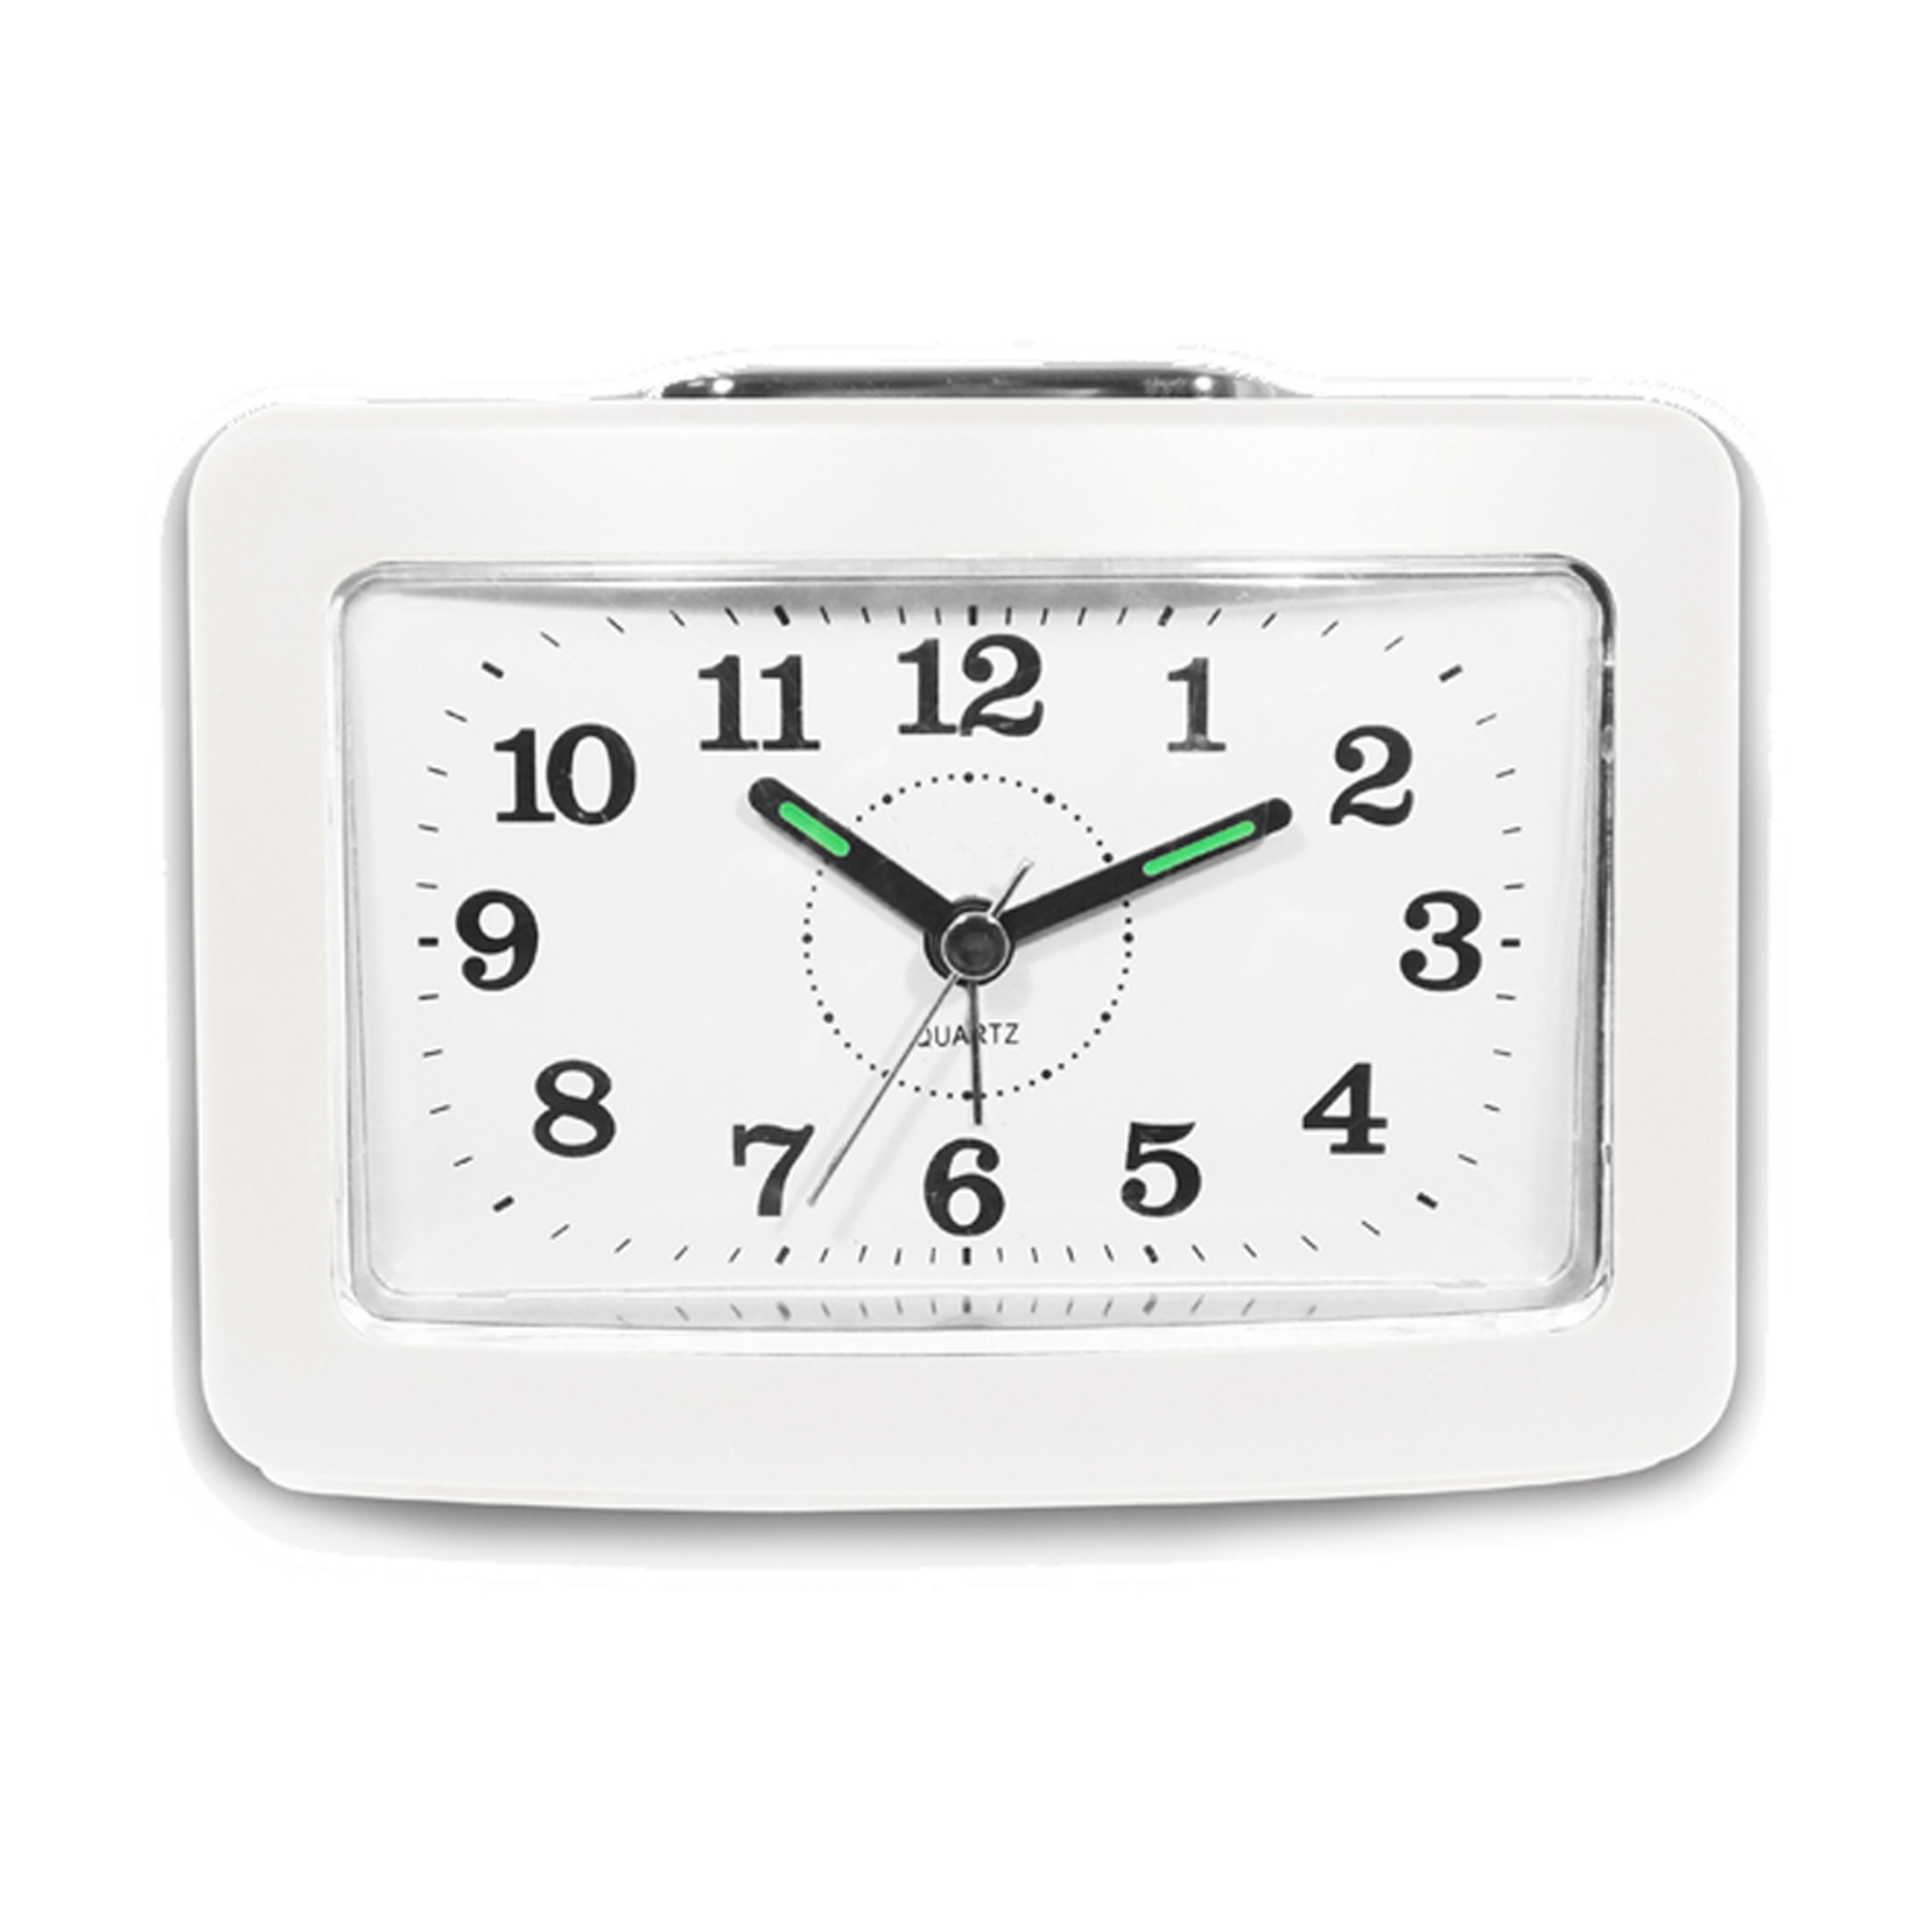 Bell Alarm Clock with Snooze and Light, White by Impecca